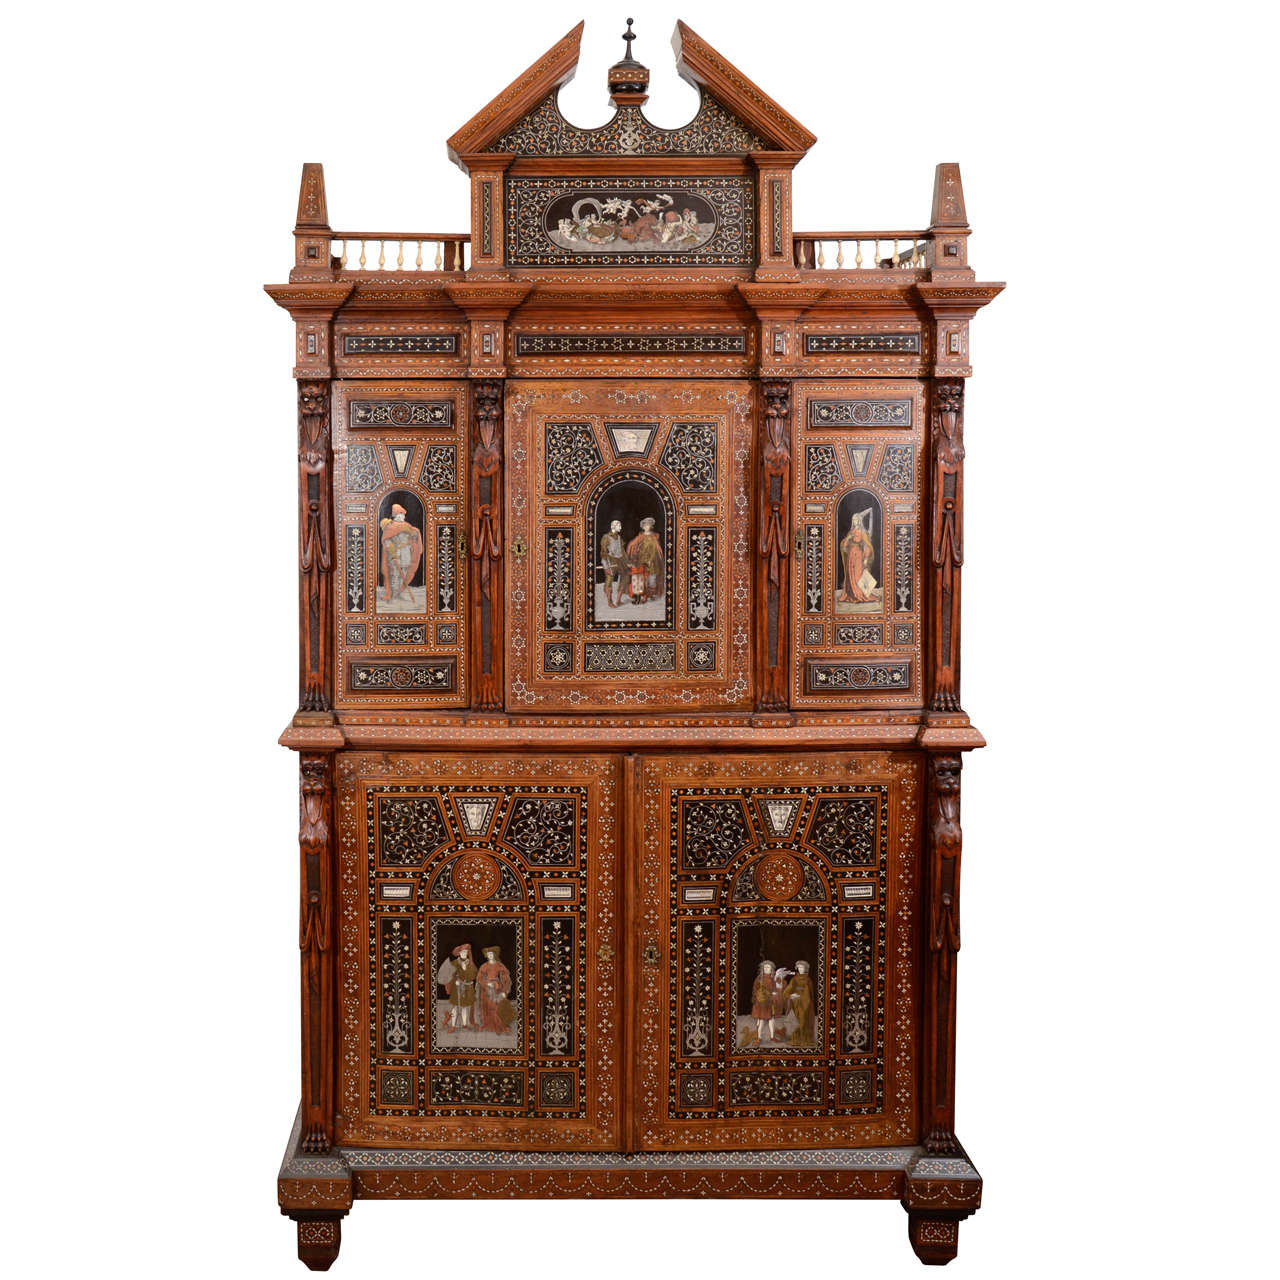 19th Century Syrian Cabinet with Inlays